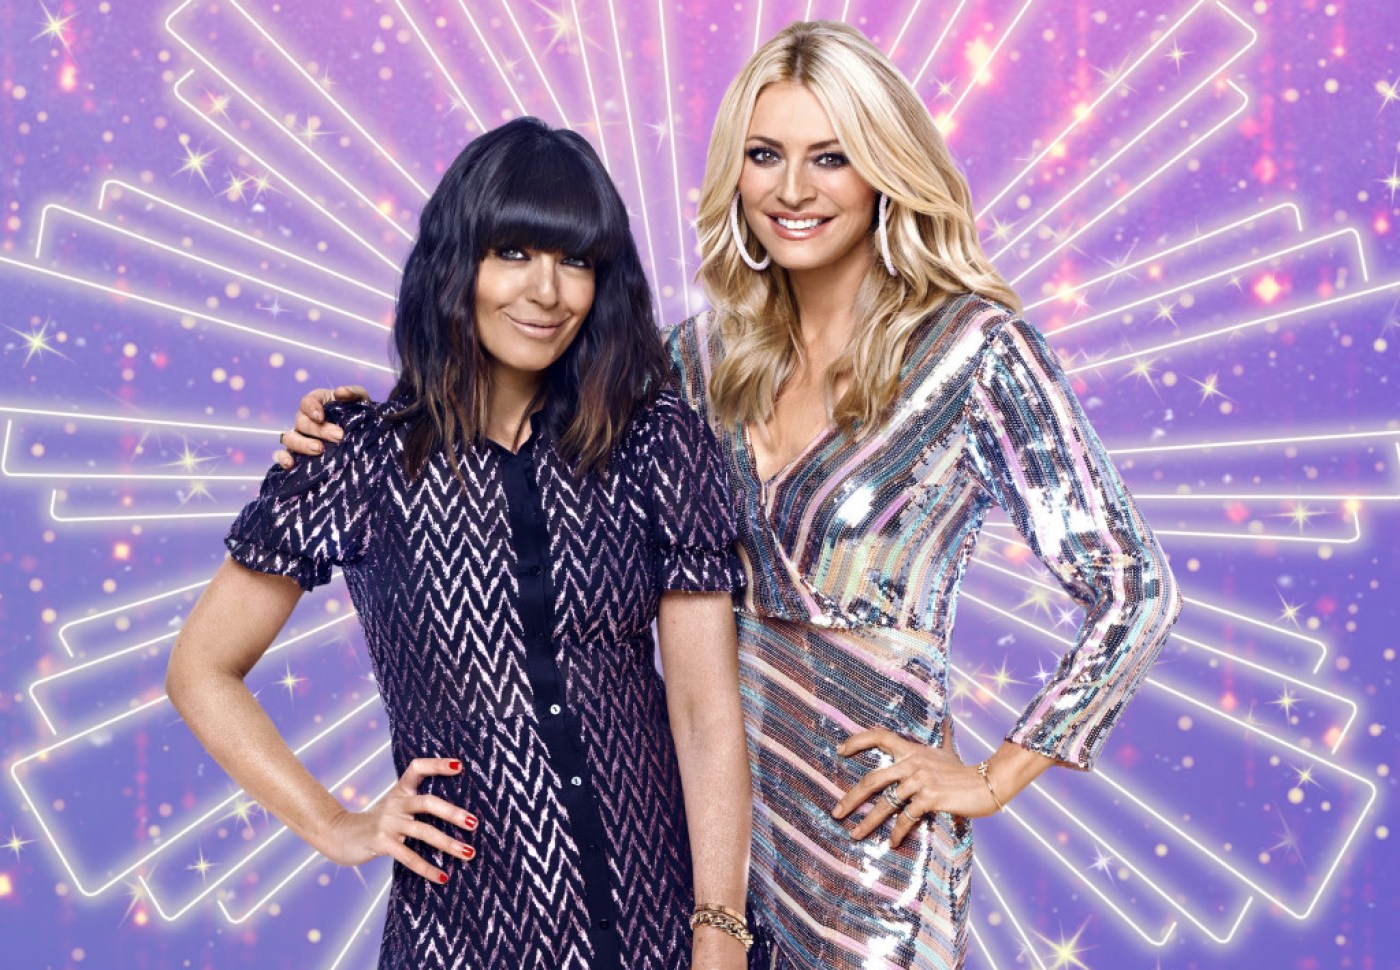 strictly come dancing 2021 - photo #15